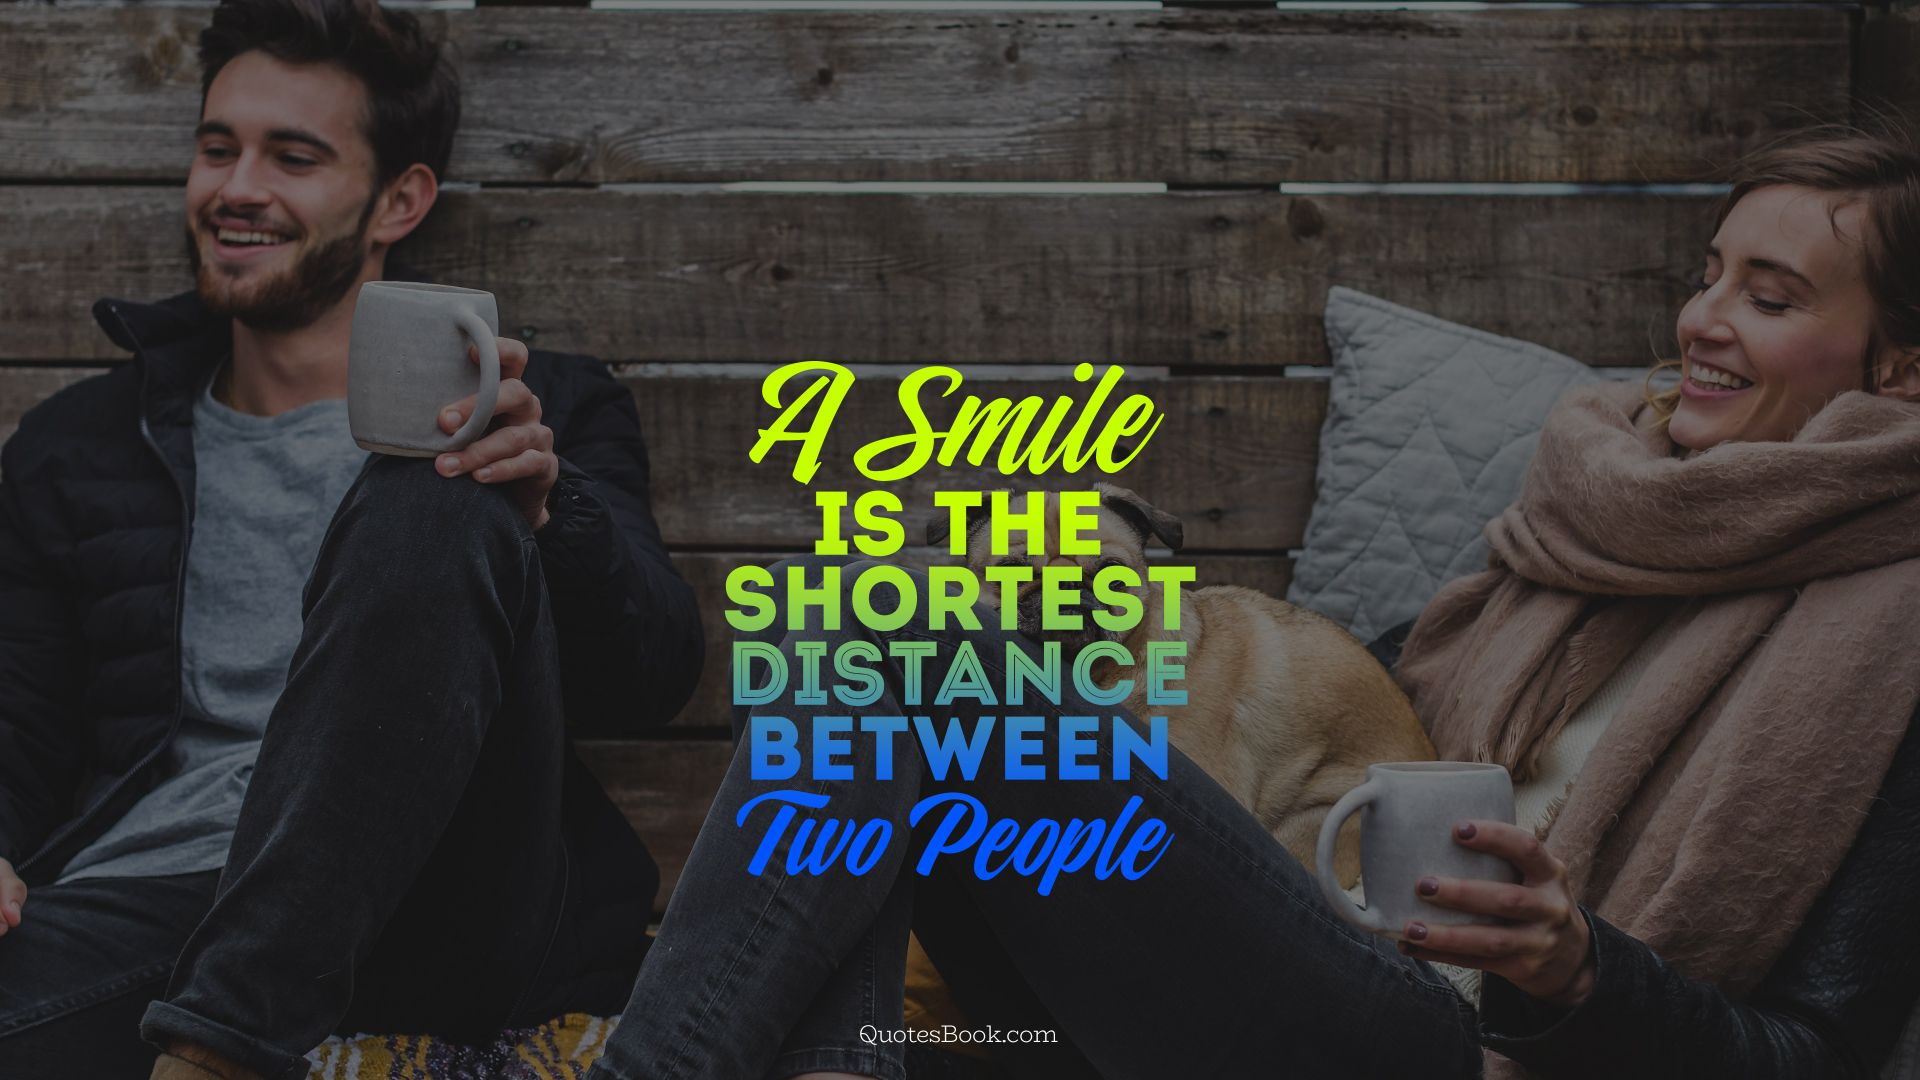 A smile is the shortest distance between two people